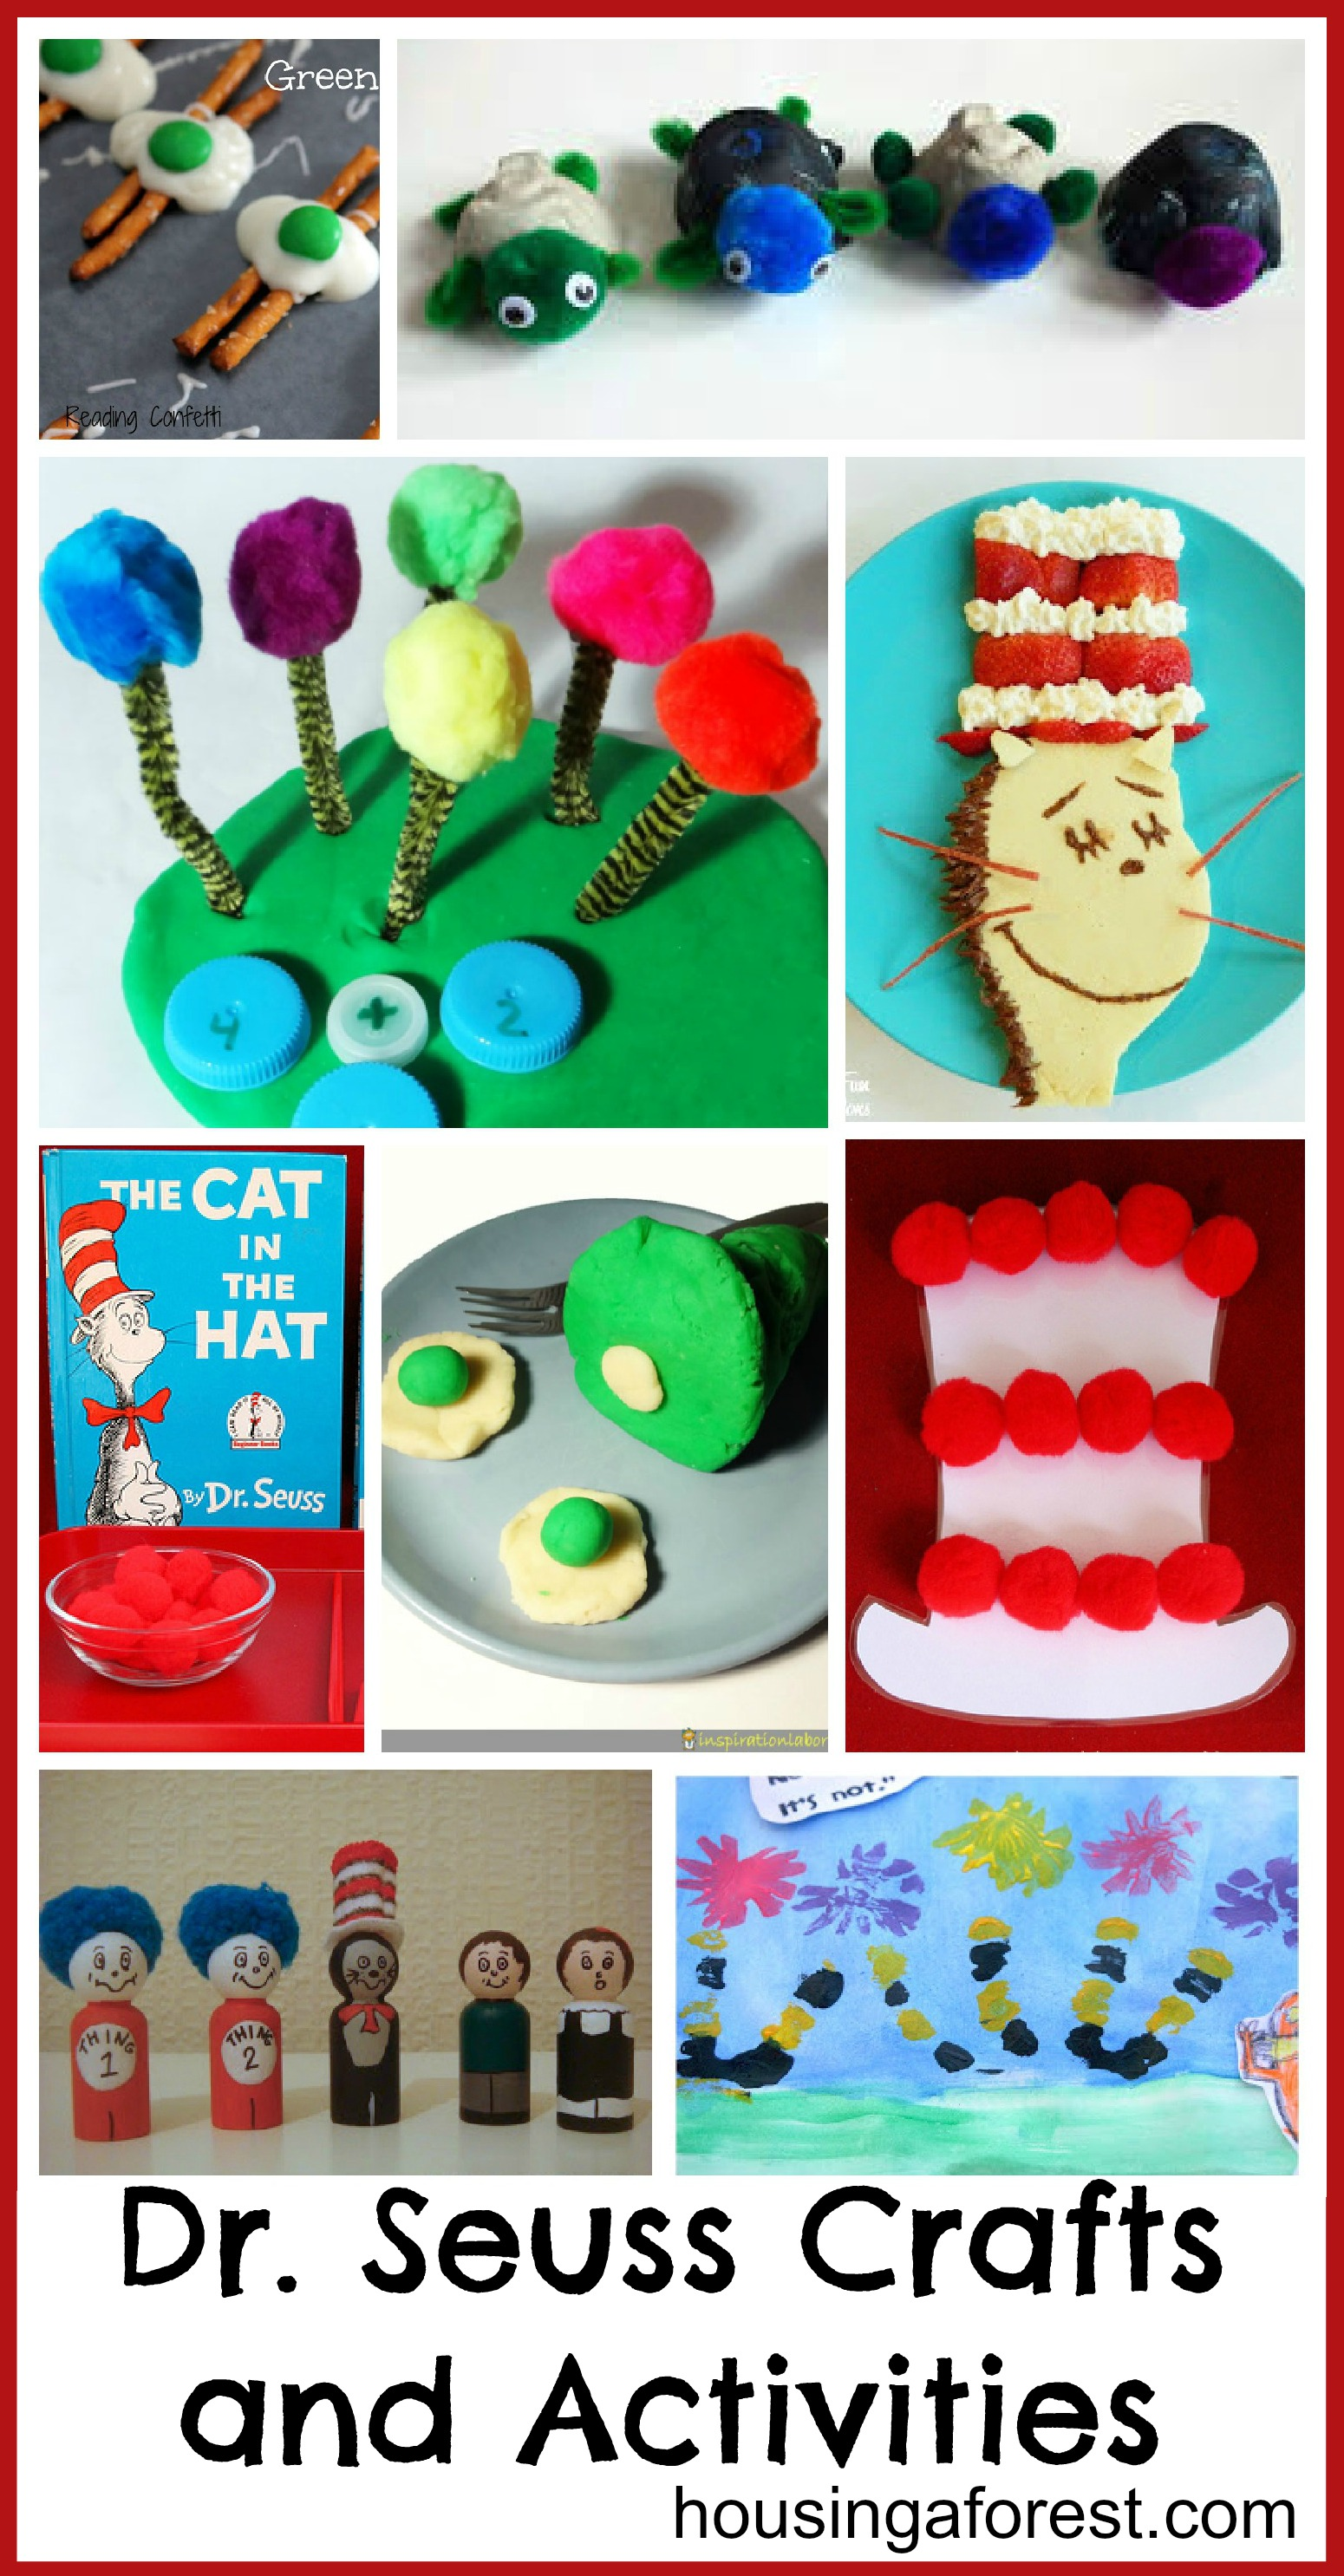 Dr seuss crafts and activities housing a forest for Dr seuss crafts for preschool